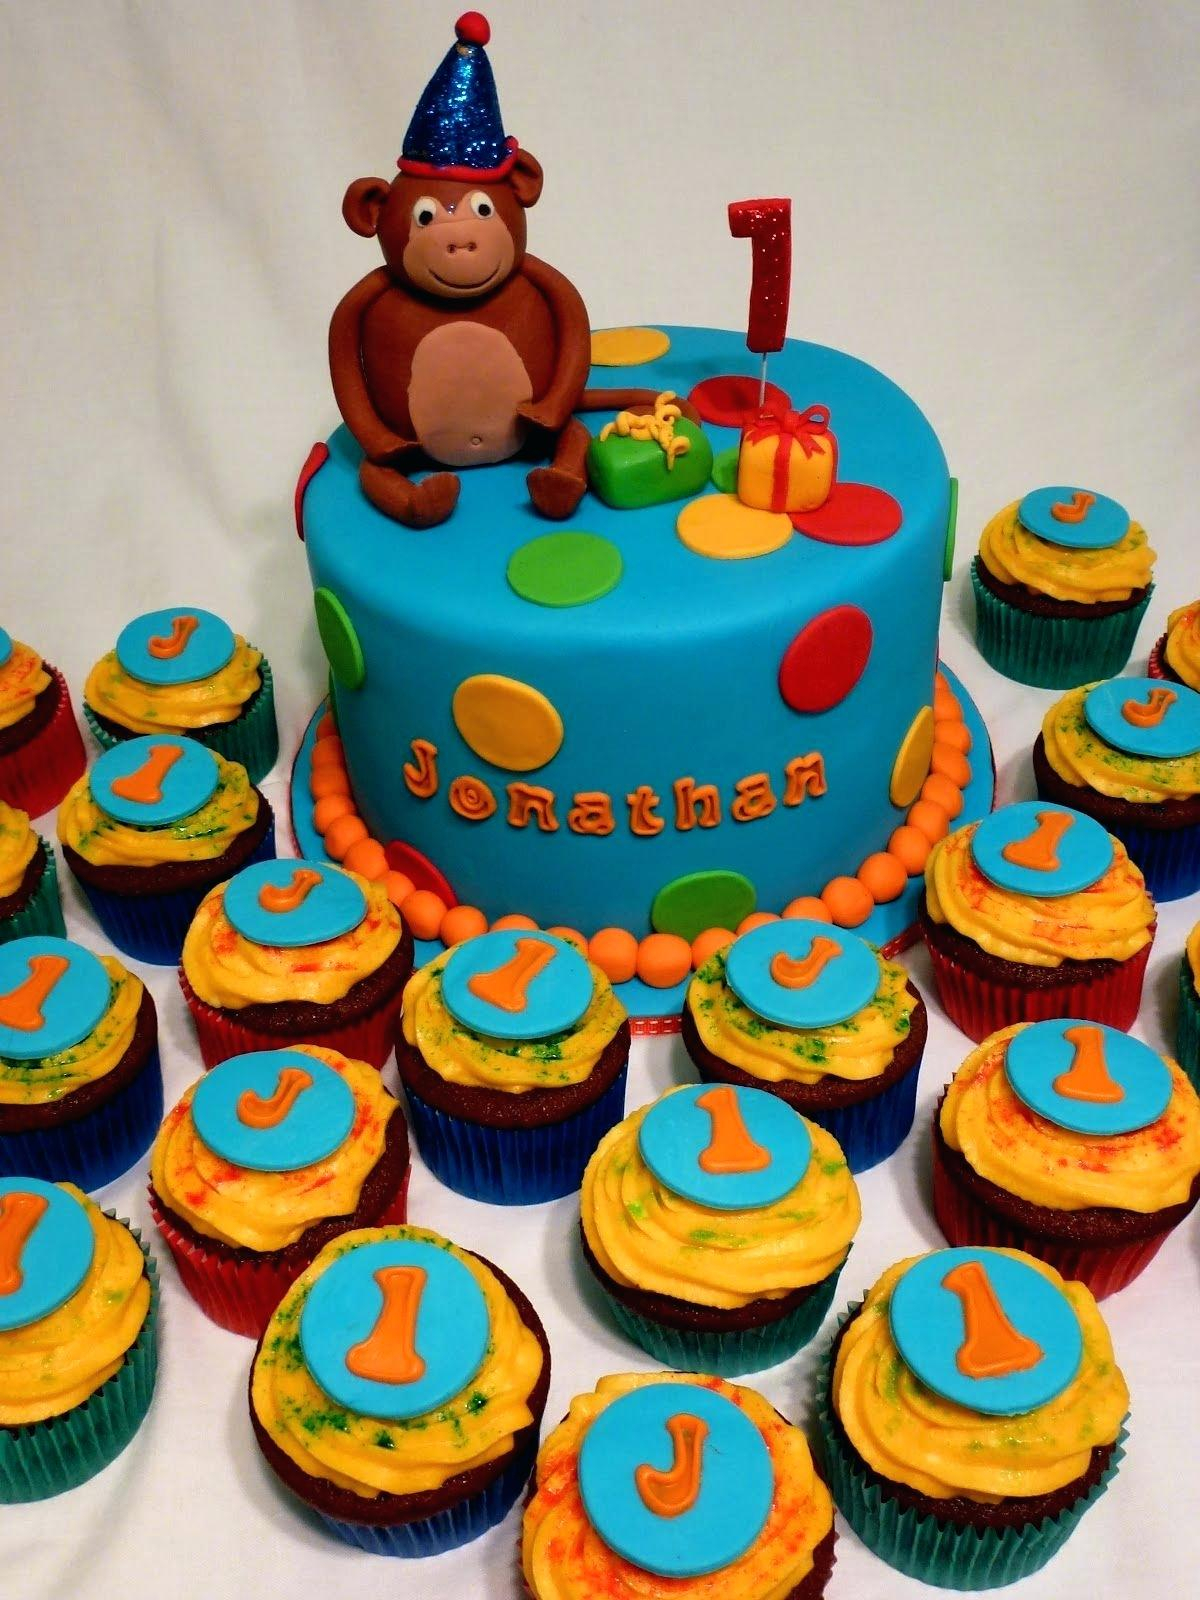 Boys 1St Birthday Cake Designs Ideas For Boy